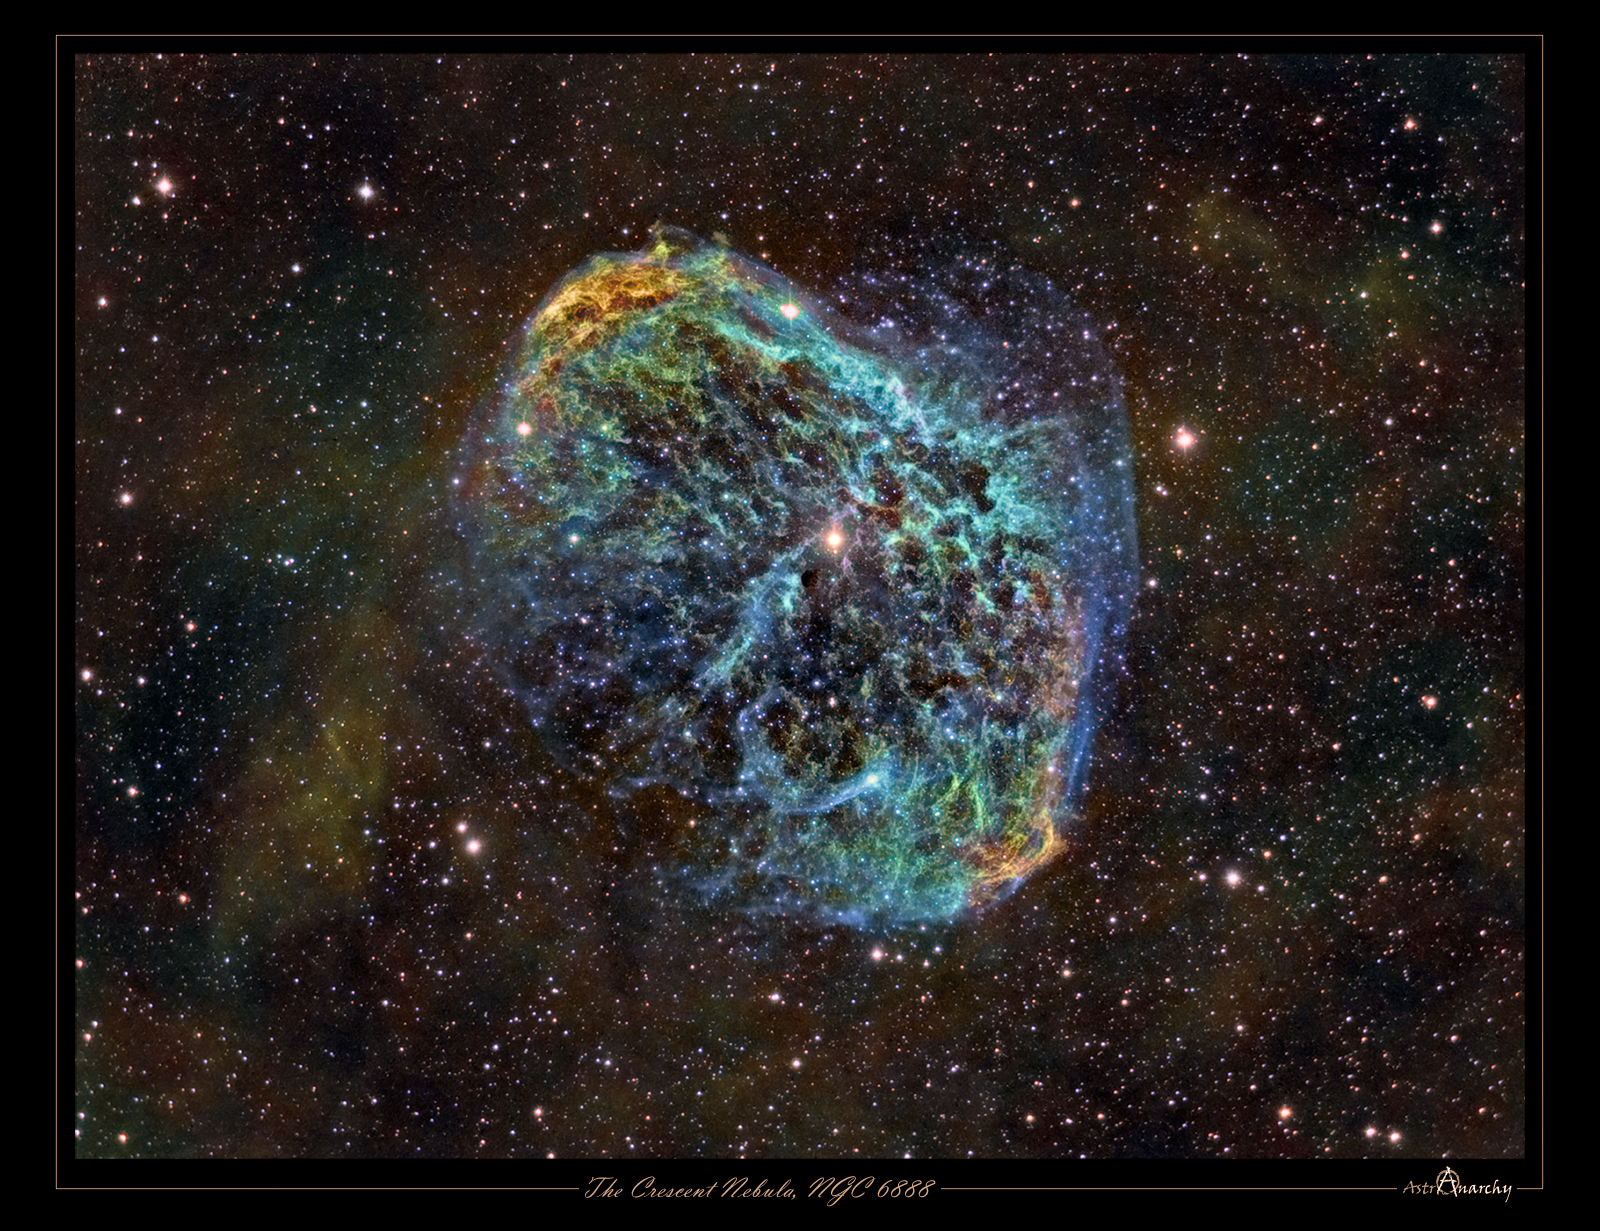 APOD: 2012 August 16 - NGC 6888: The Crescent Nebula